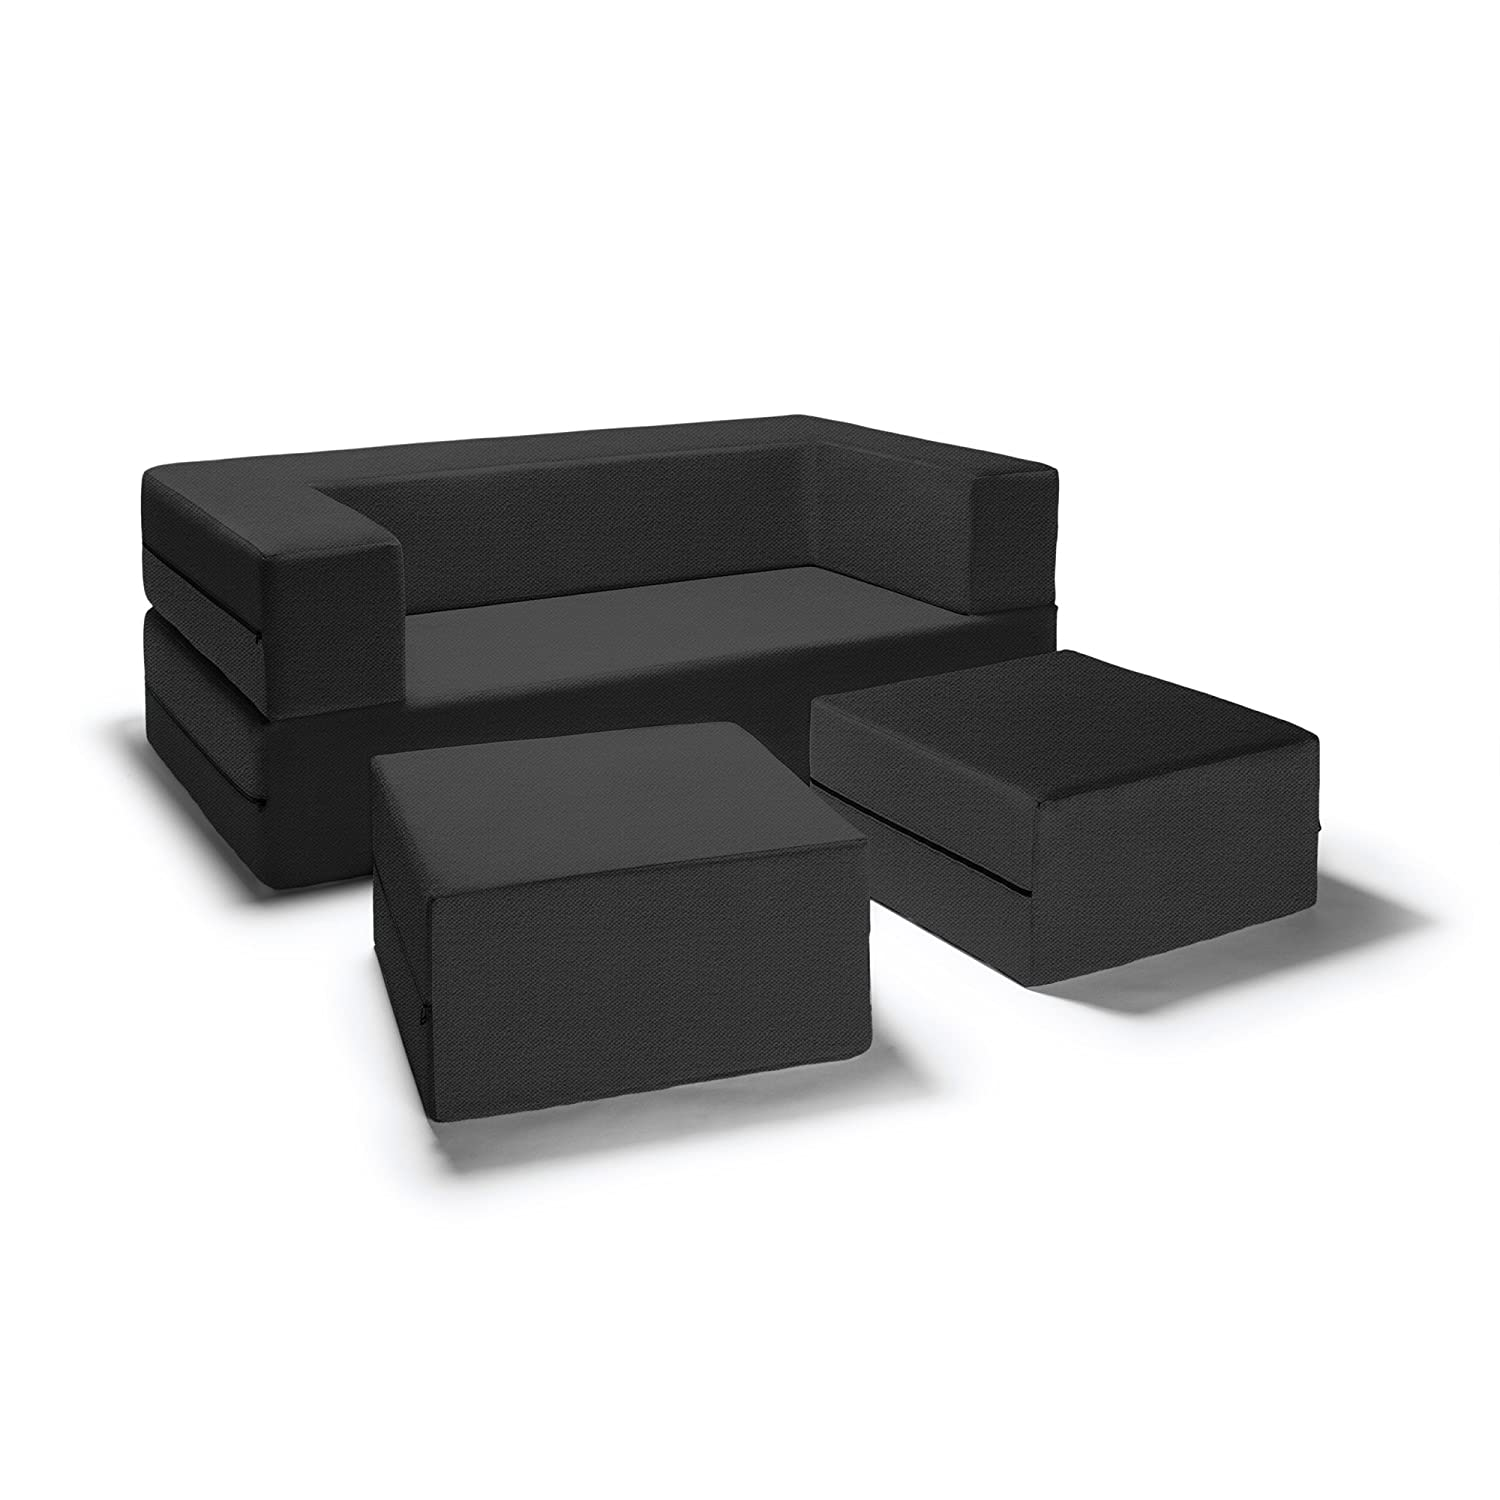 black function home ca loveseat bed fordable dp sofa leather homcom set ottoman sectional with amazon sleeper kitchen storage multi